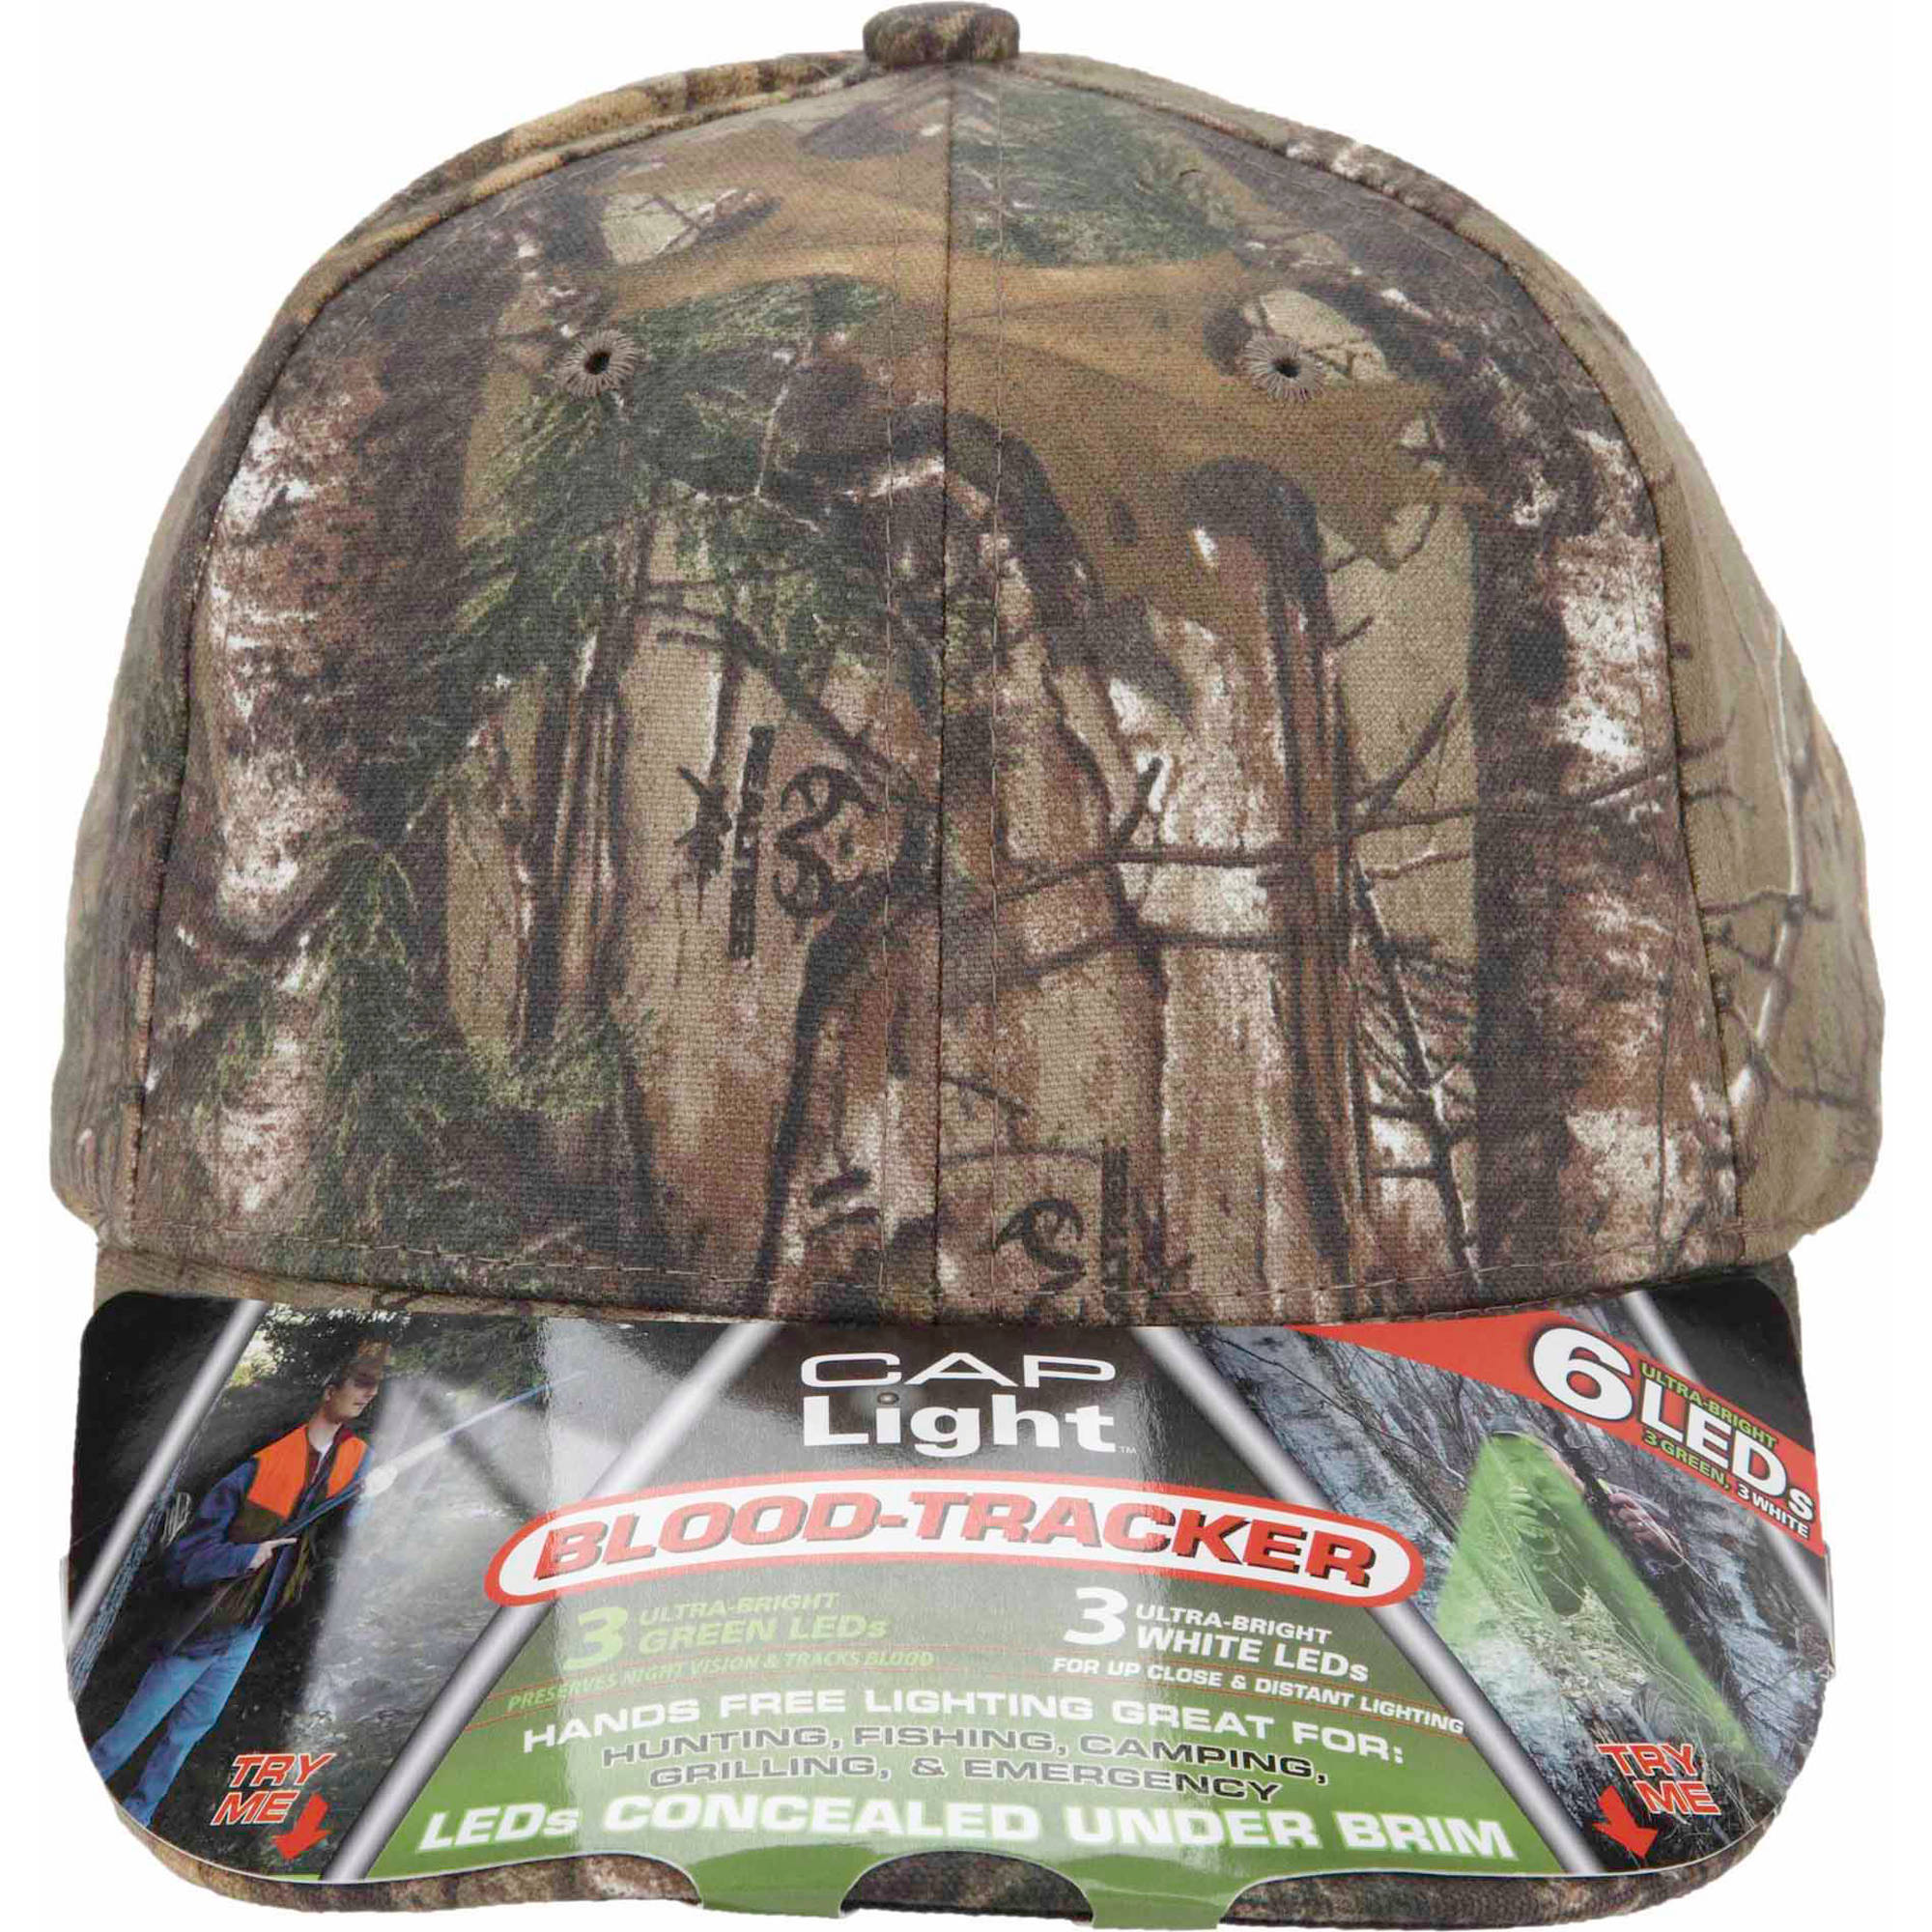 Realtree Xtra Camo 6-LED Blood Tracker Cap Light